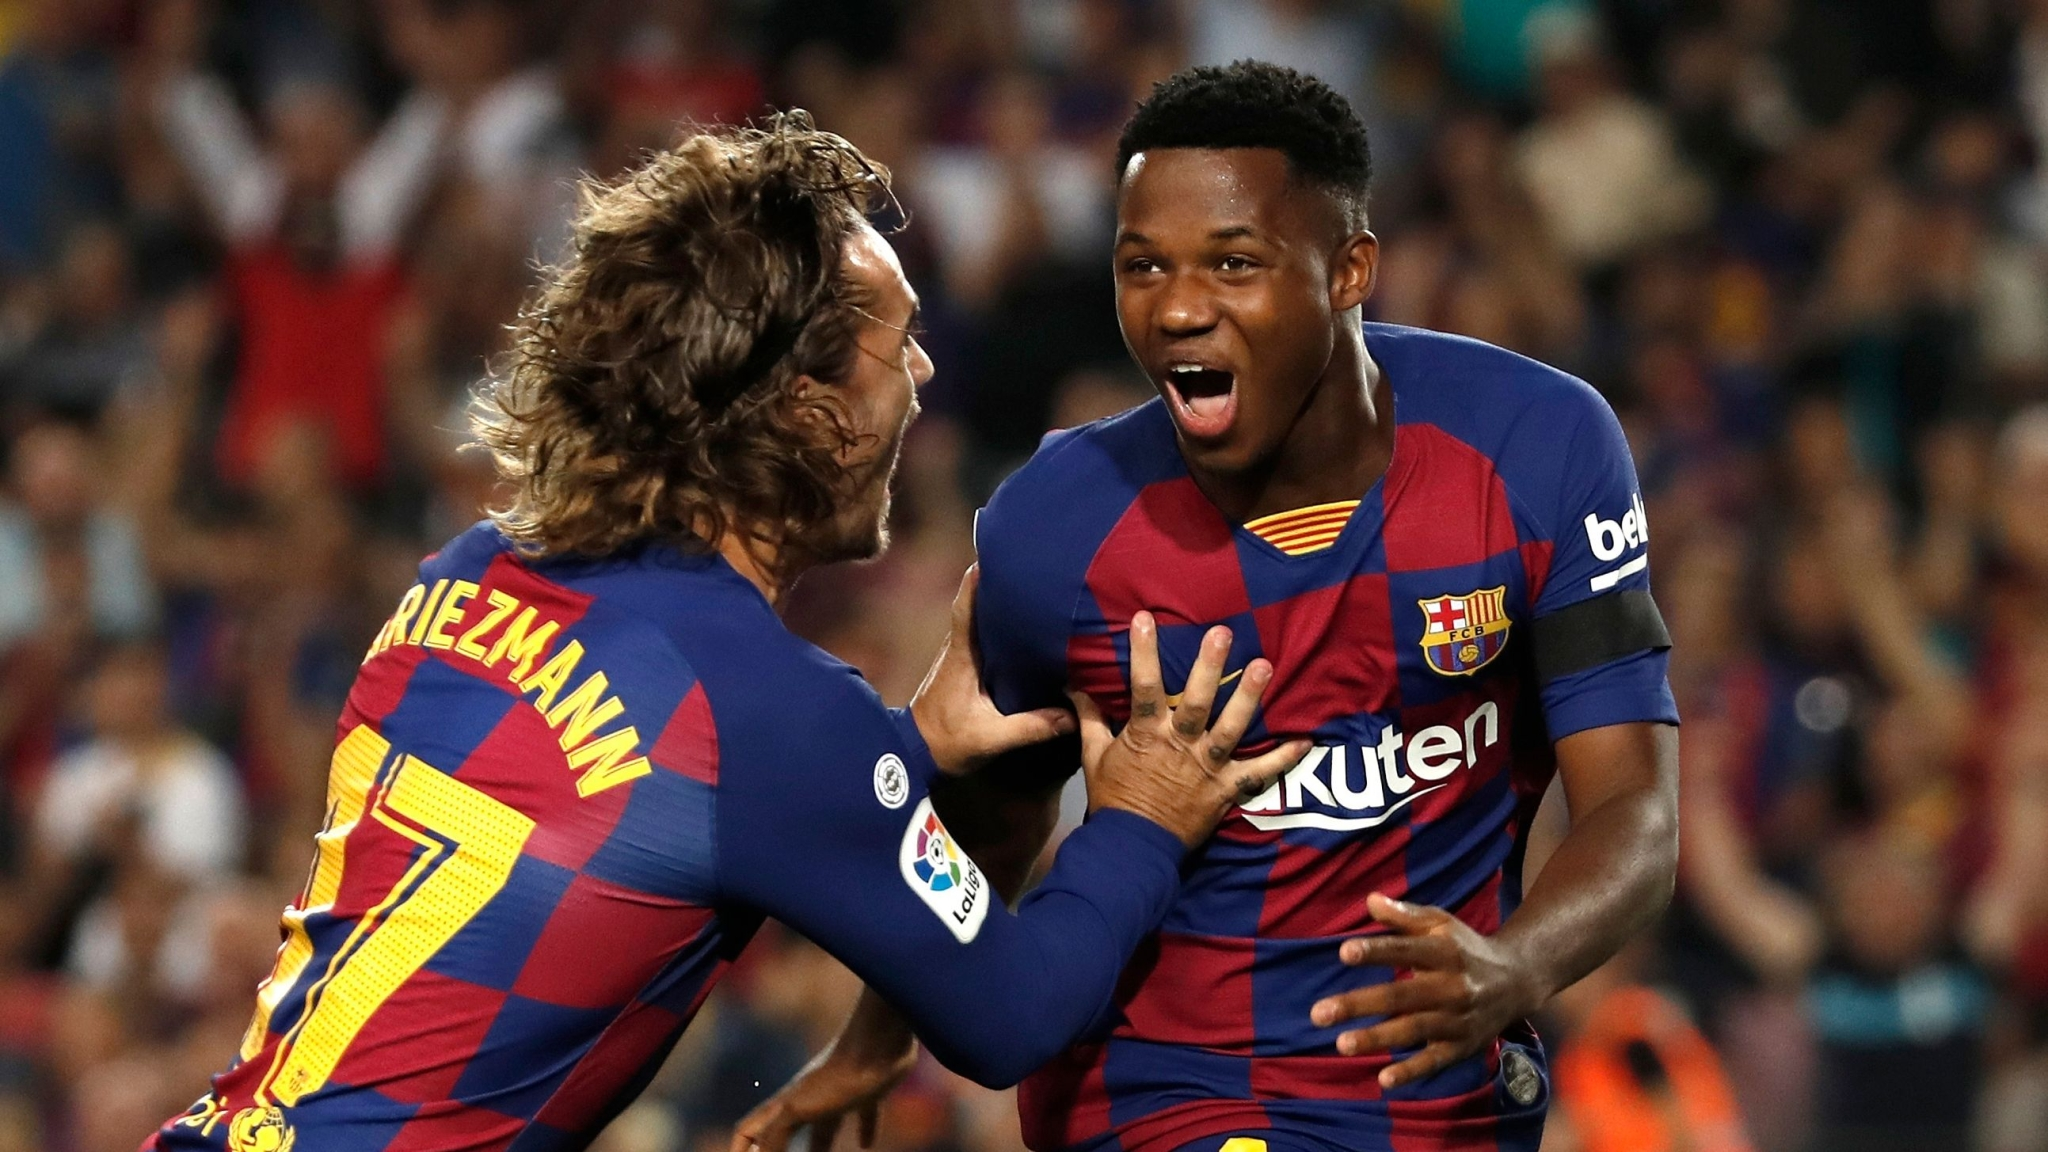 16-Year-old Barca Star Ansu Fati Sets New Record in Valencia Rout